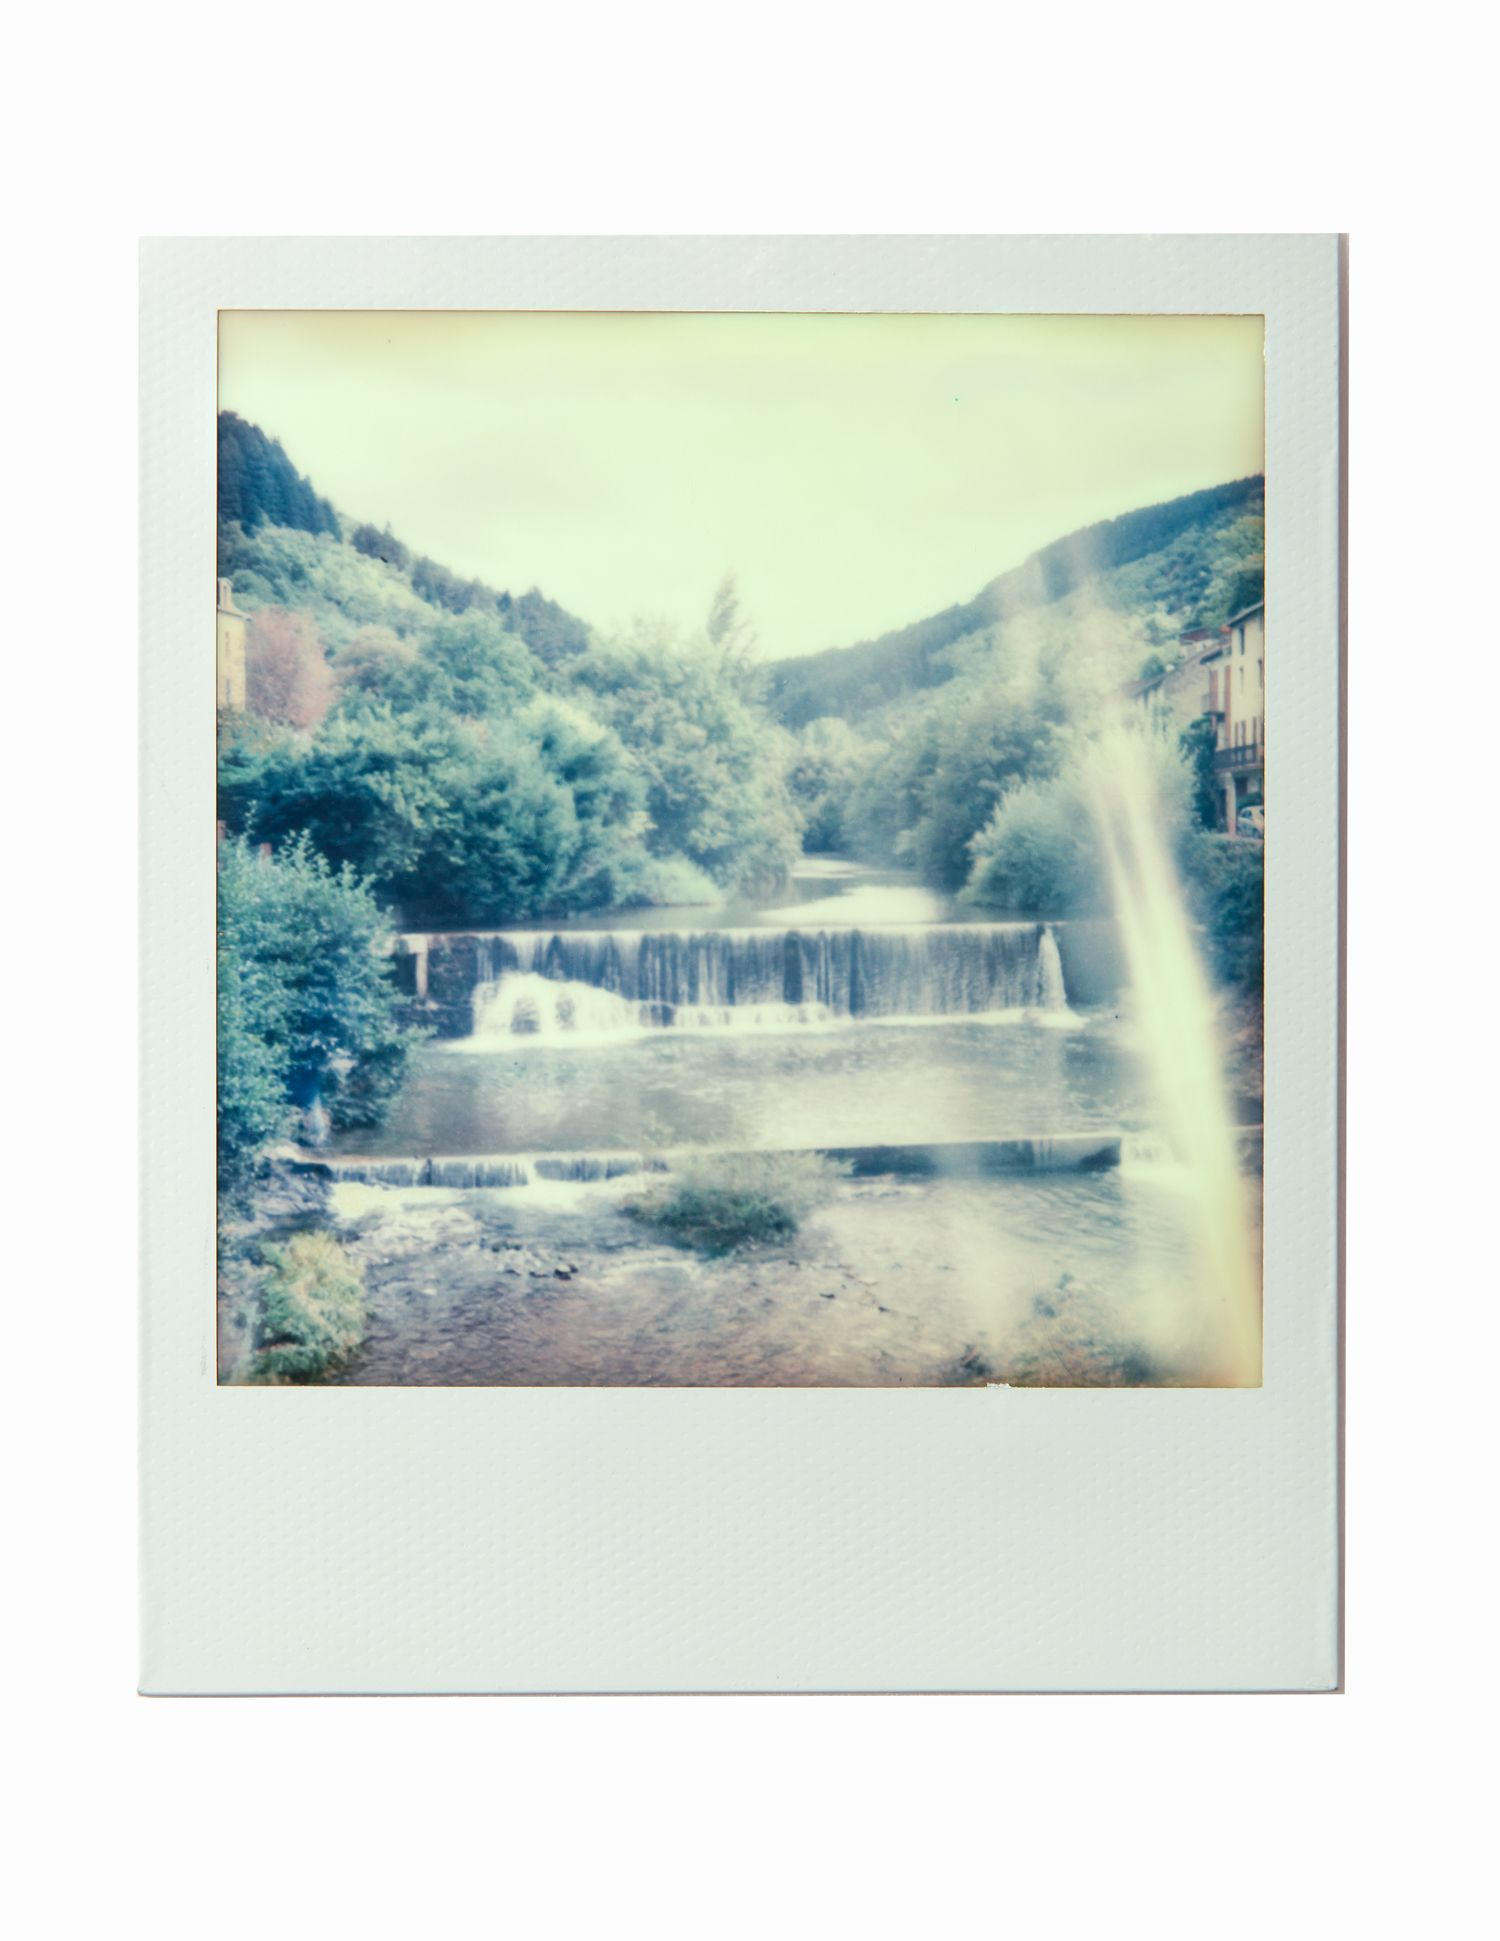 AVEYRON - FRANCE - 2015 -  SX-70 POLAROID CAMERA WITH  IMPOSSIBLE PROJECT FILM - Photography by Pedro Loreto - www.pedroloreto.com